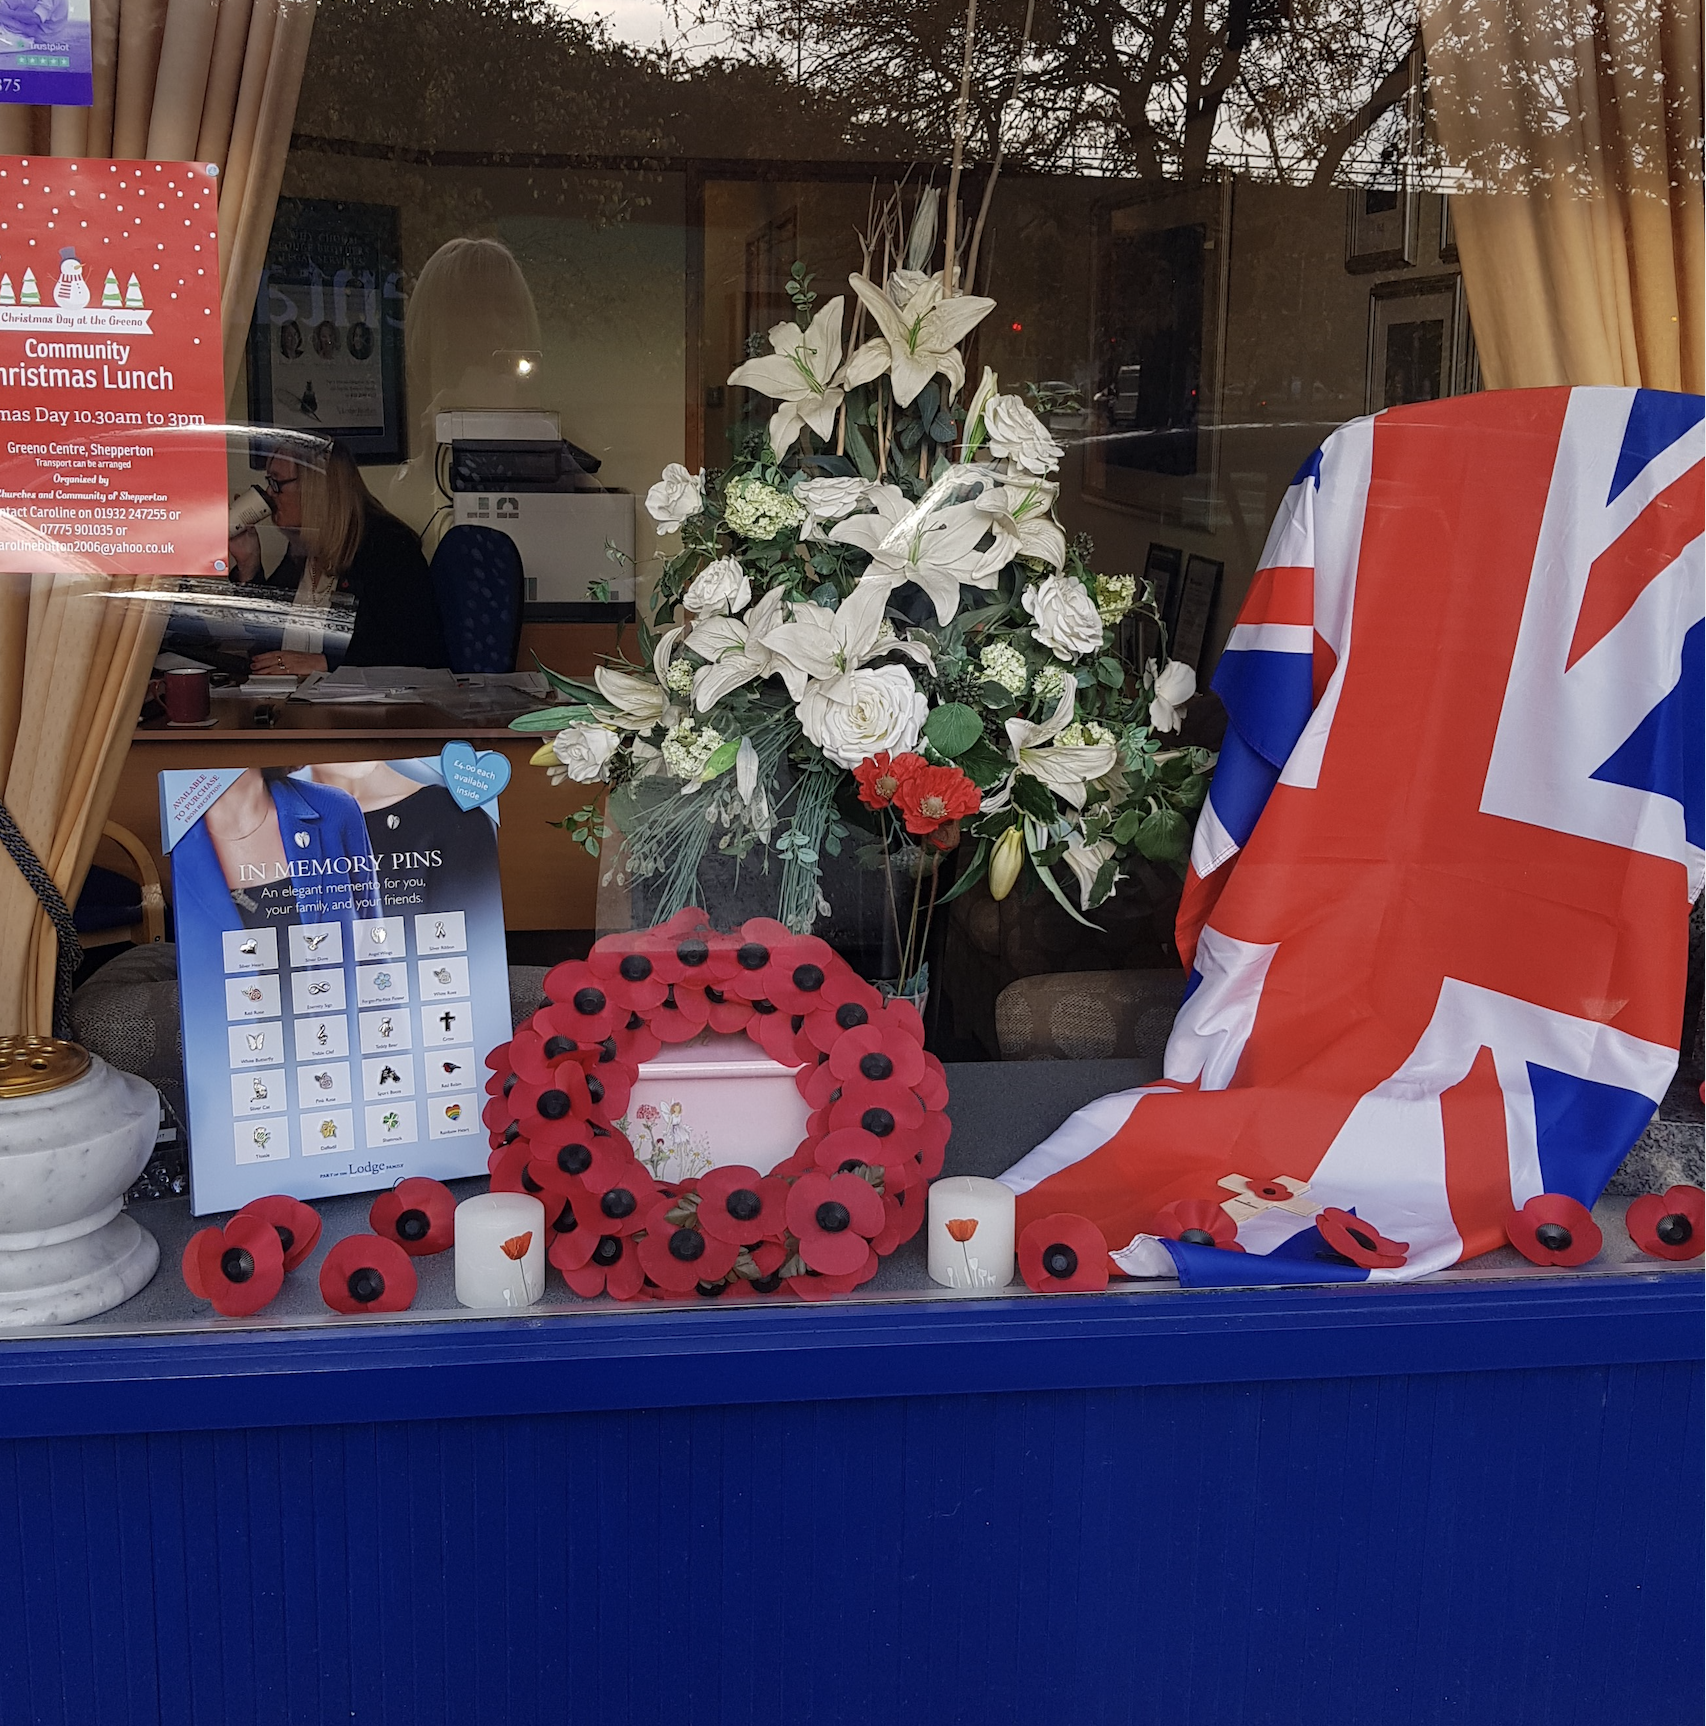 Remembrance Day 2019 Sunbury – Lest We Forget!